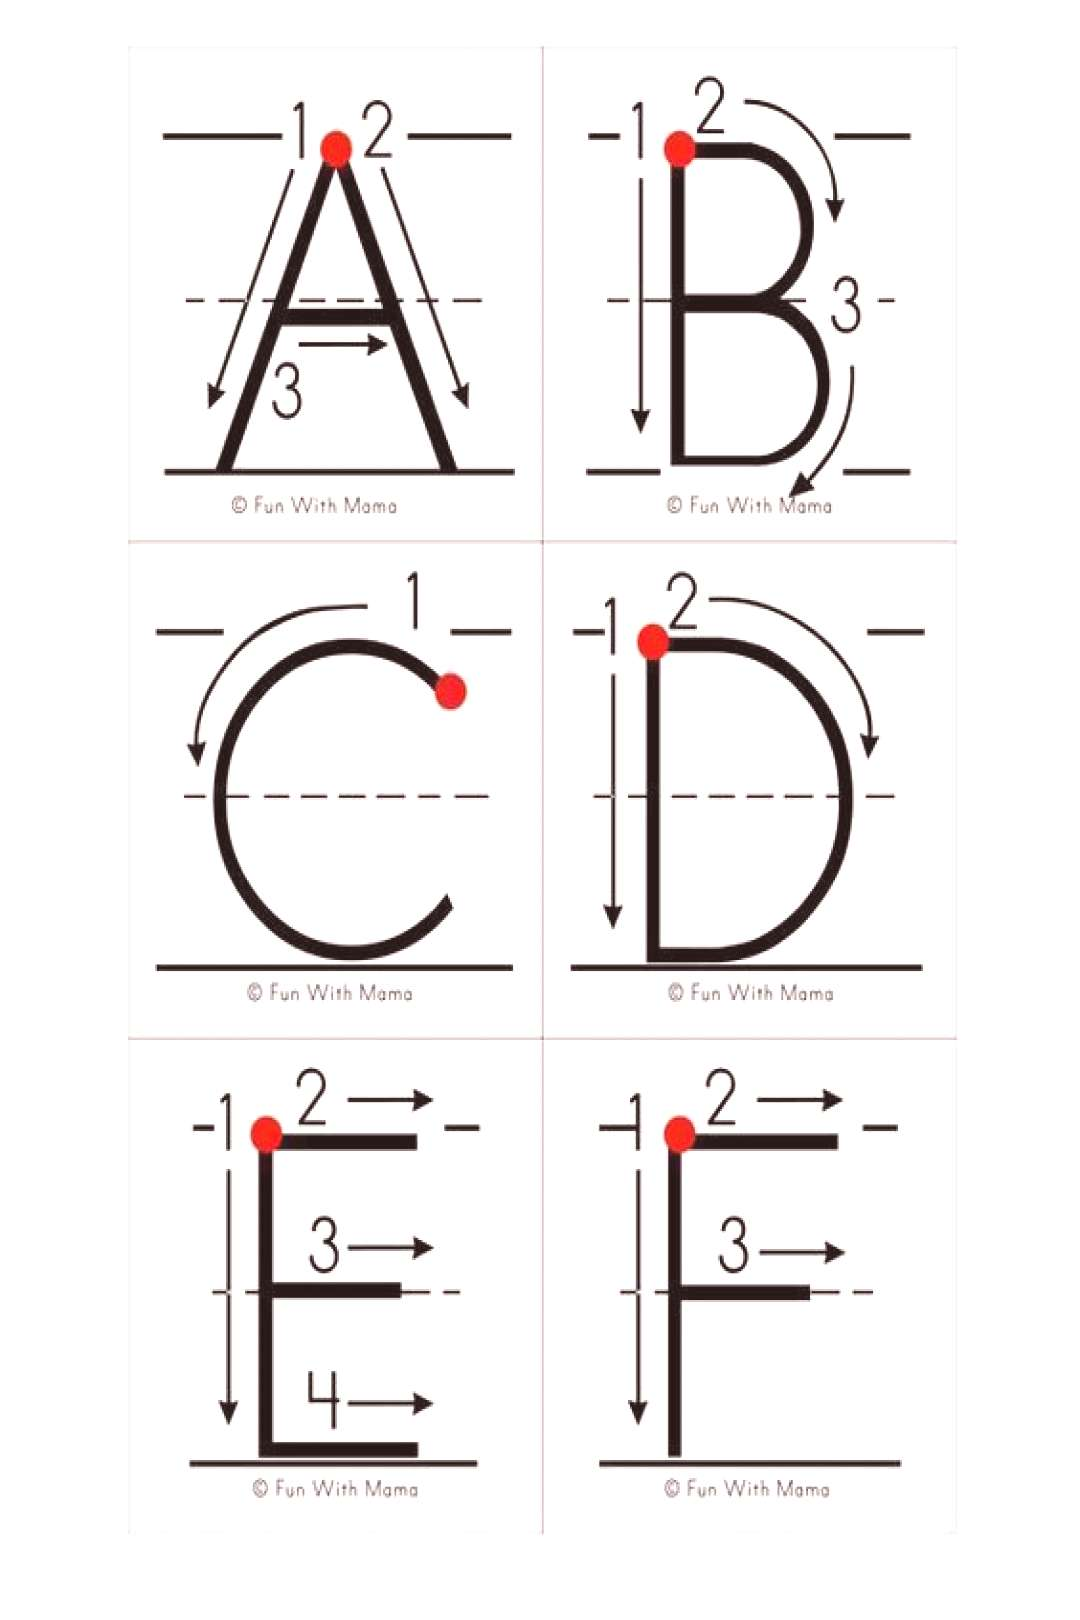 alphabet letter formation and writing practice cards These alphabet letter formation and writing pr